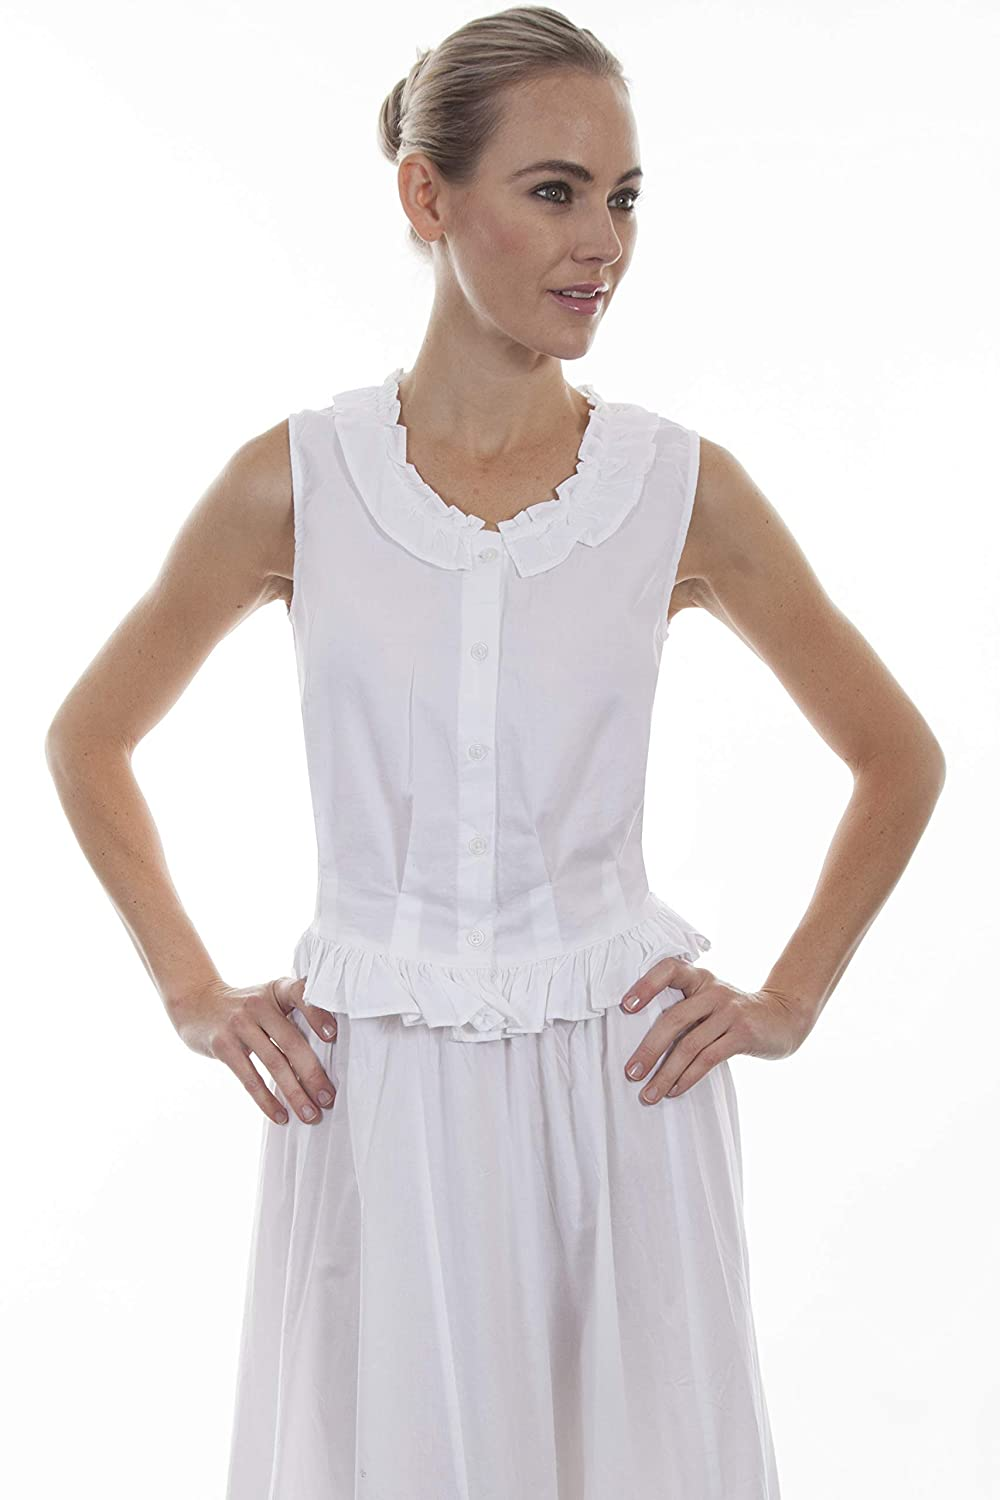 Scully Pretty Camisole with Ruffles White